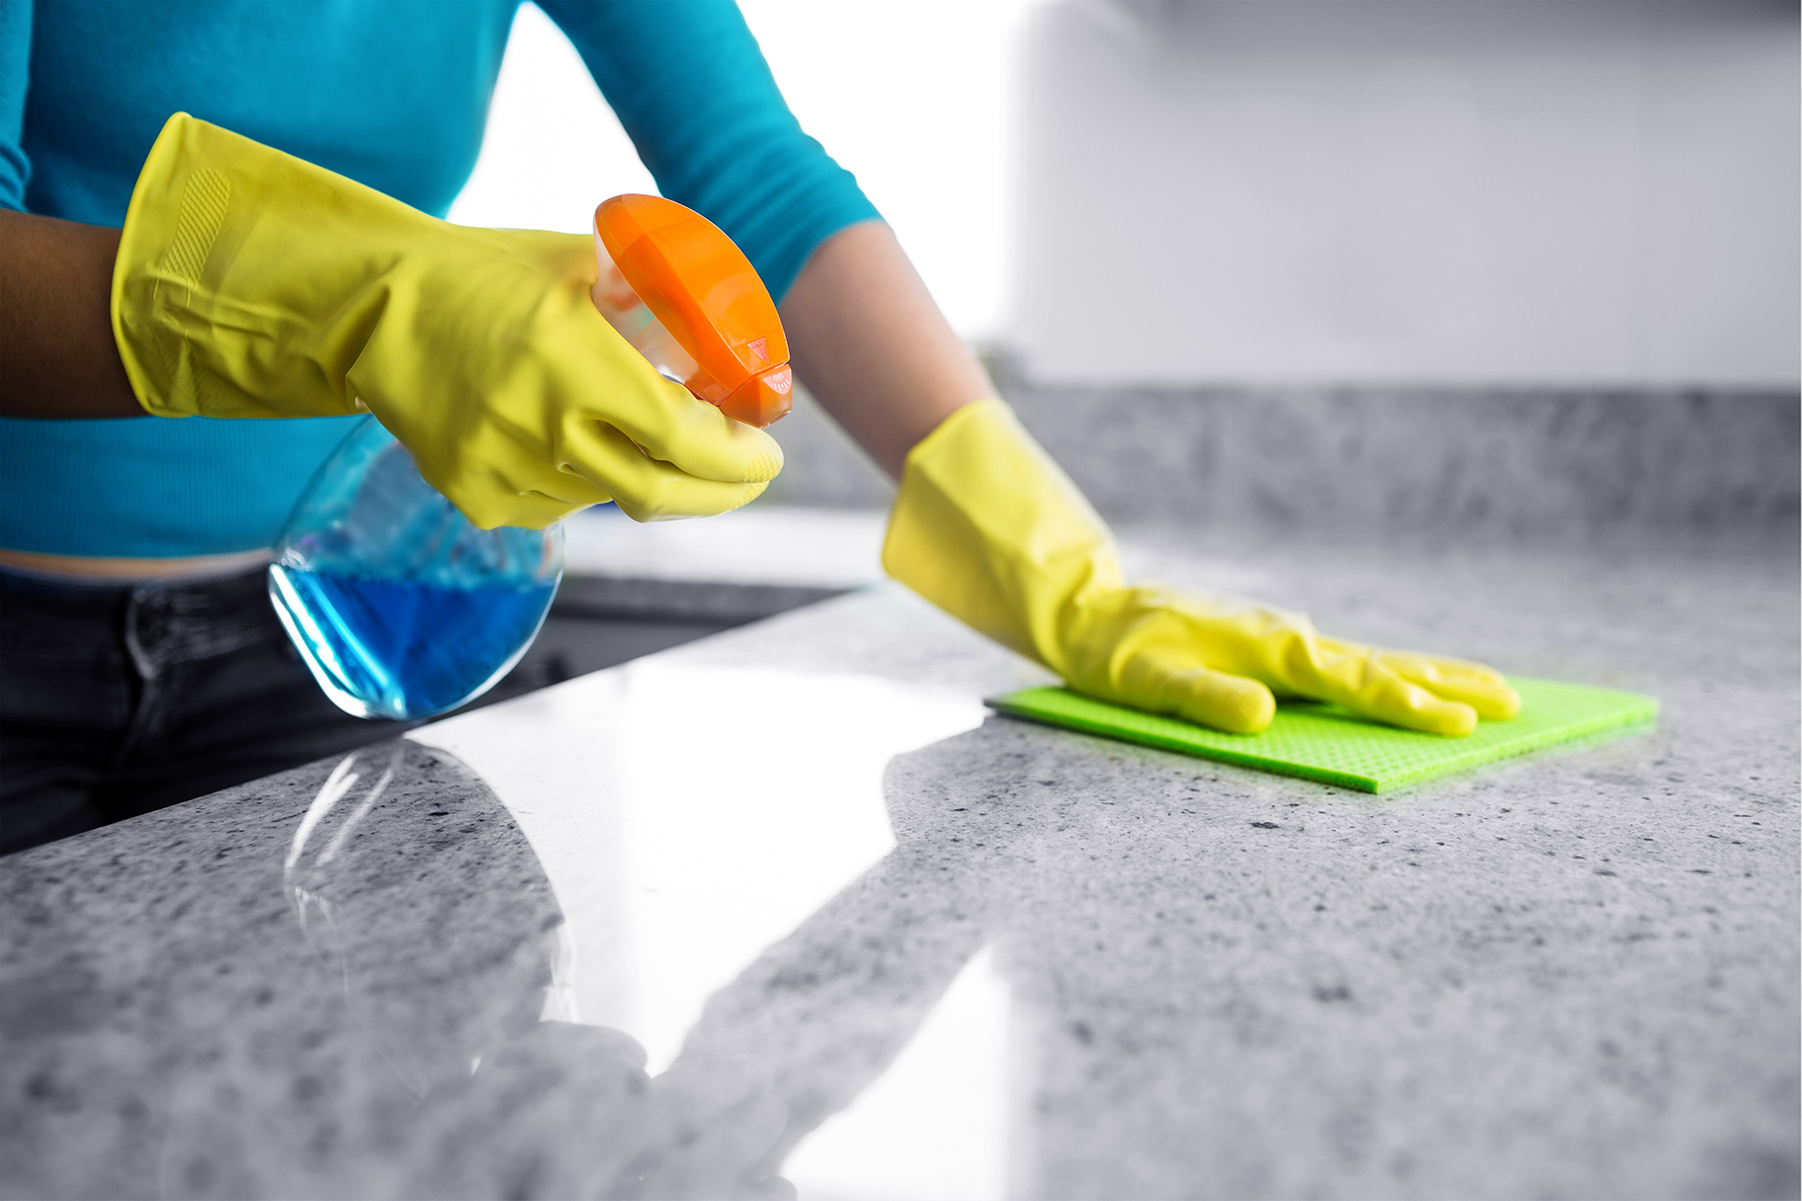 Practice personal protective measures (e.g., stay home when sick, wash your hands, use respiratory etiquette, clean frequently touched surfaces daily). A 17 March 2020 report in The New England Journal of Medicine reported that SARS-CoV-2 (COVID)